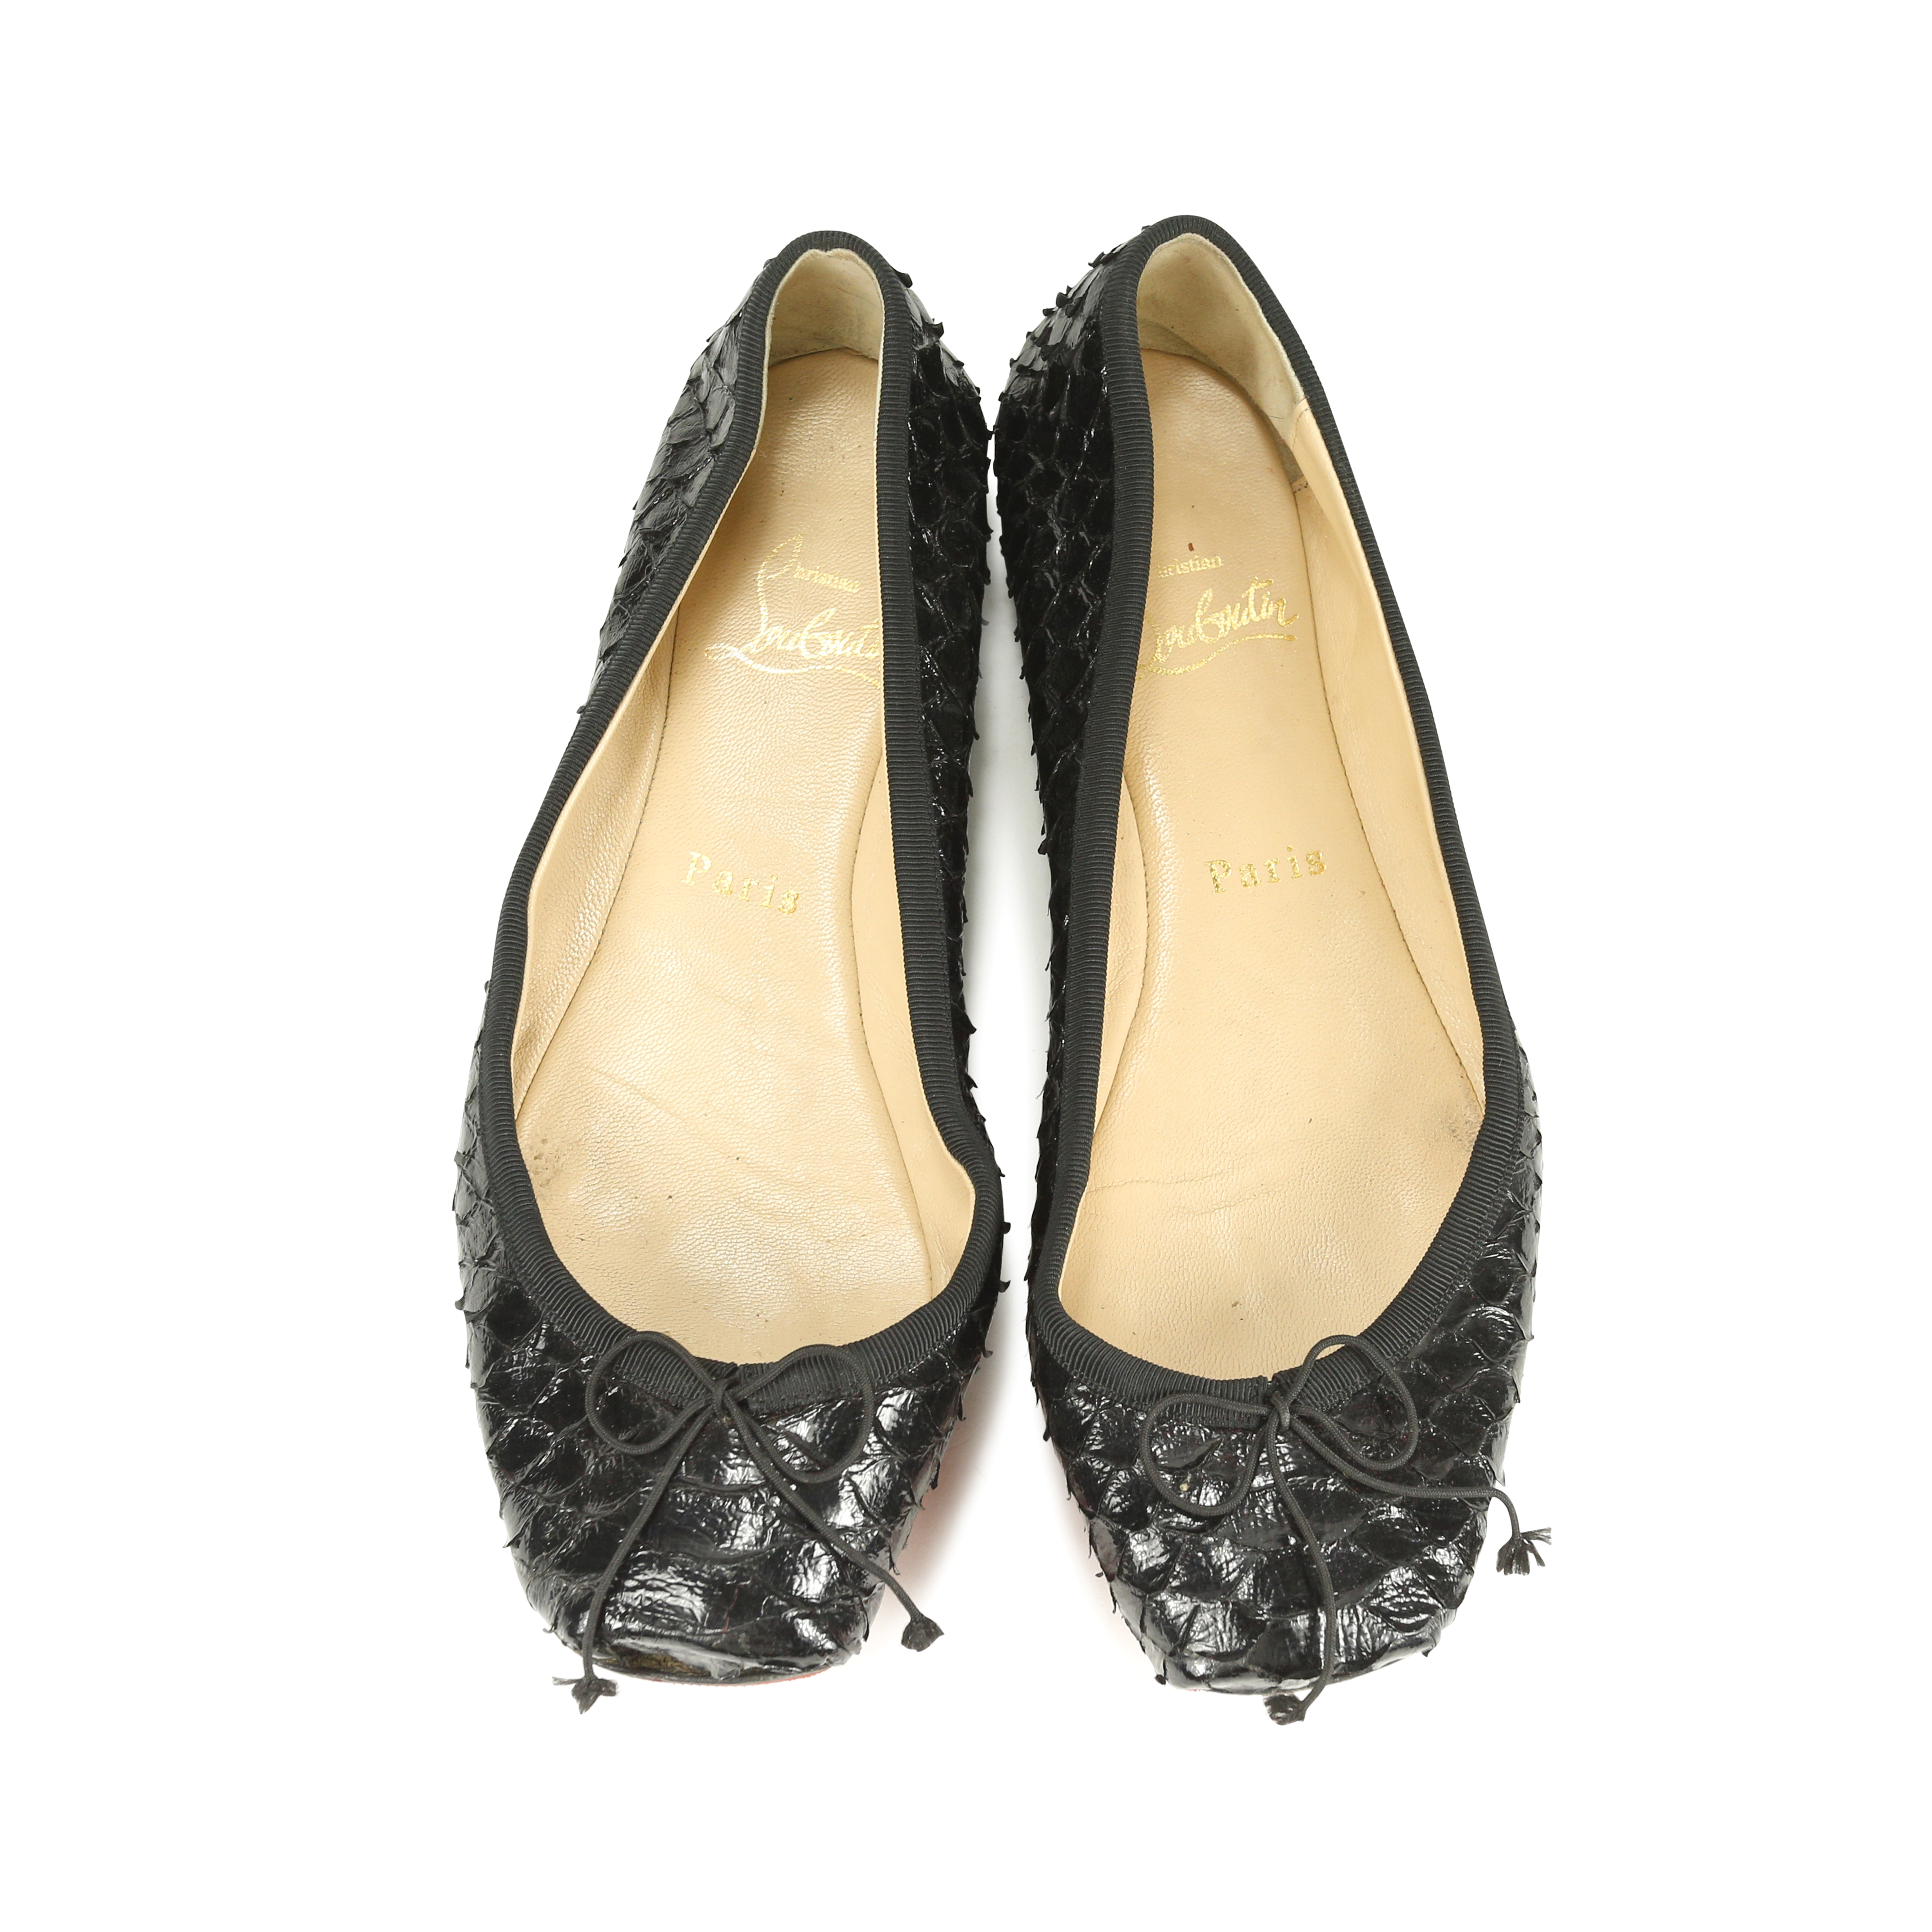 d621ded72304 ... australia second hand christian louboutin python rosella flats the  fifth collection fa988 d79c5